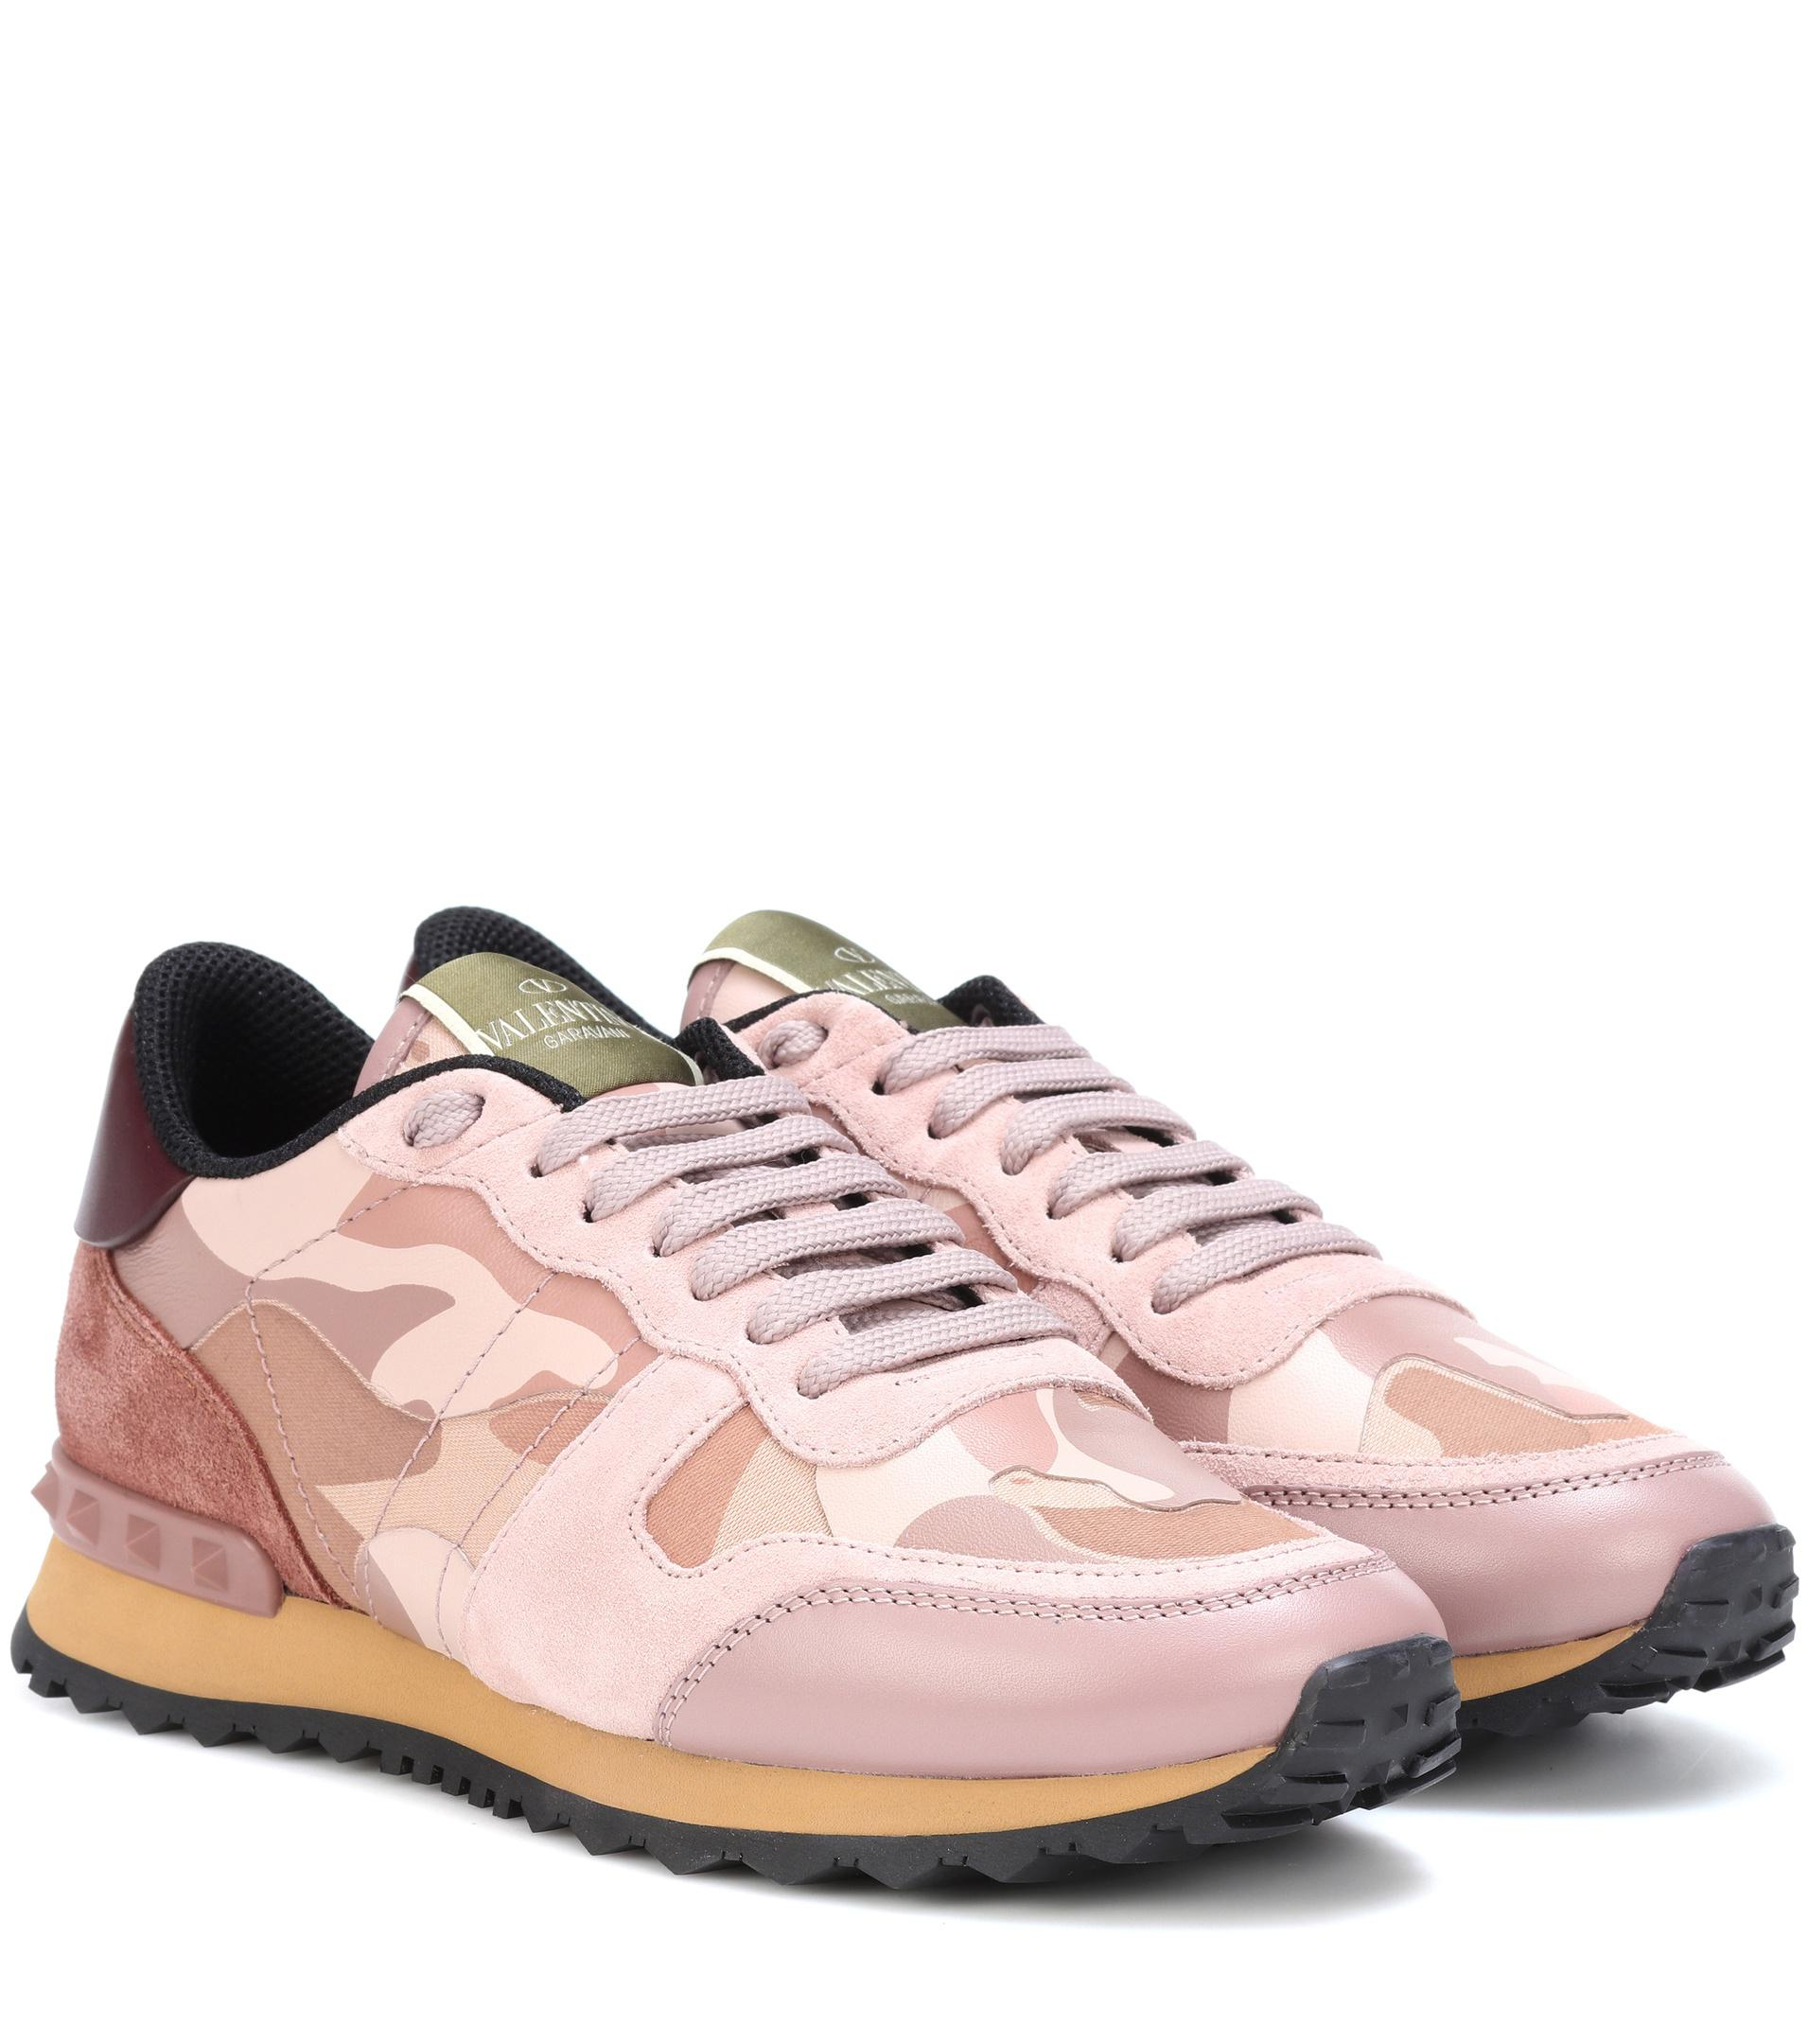 7fe5c752ad33b Valentino Rockrunner Camouflage Sneakers in Pink - Lyst